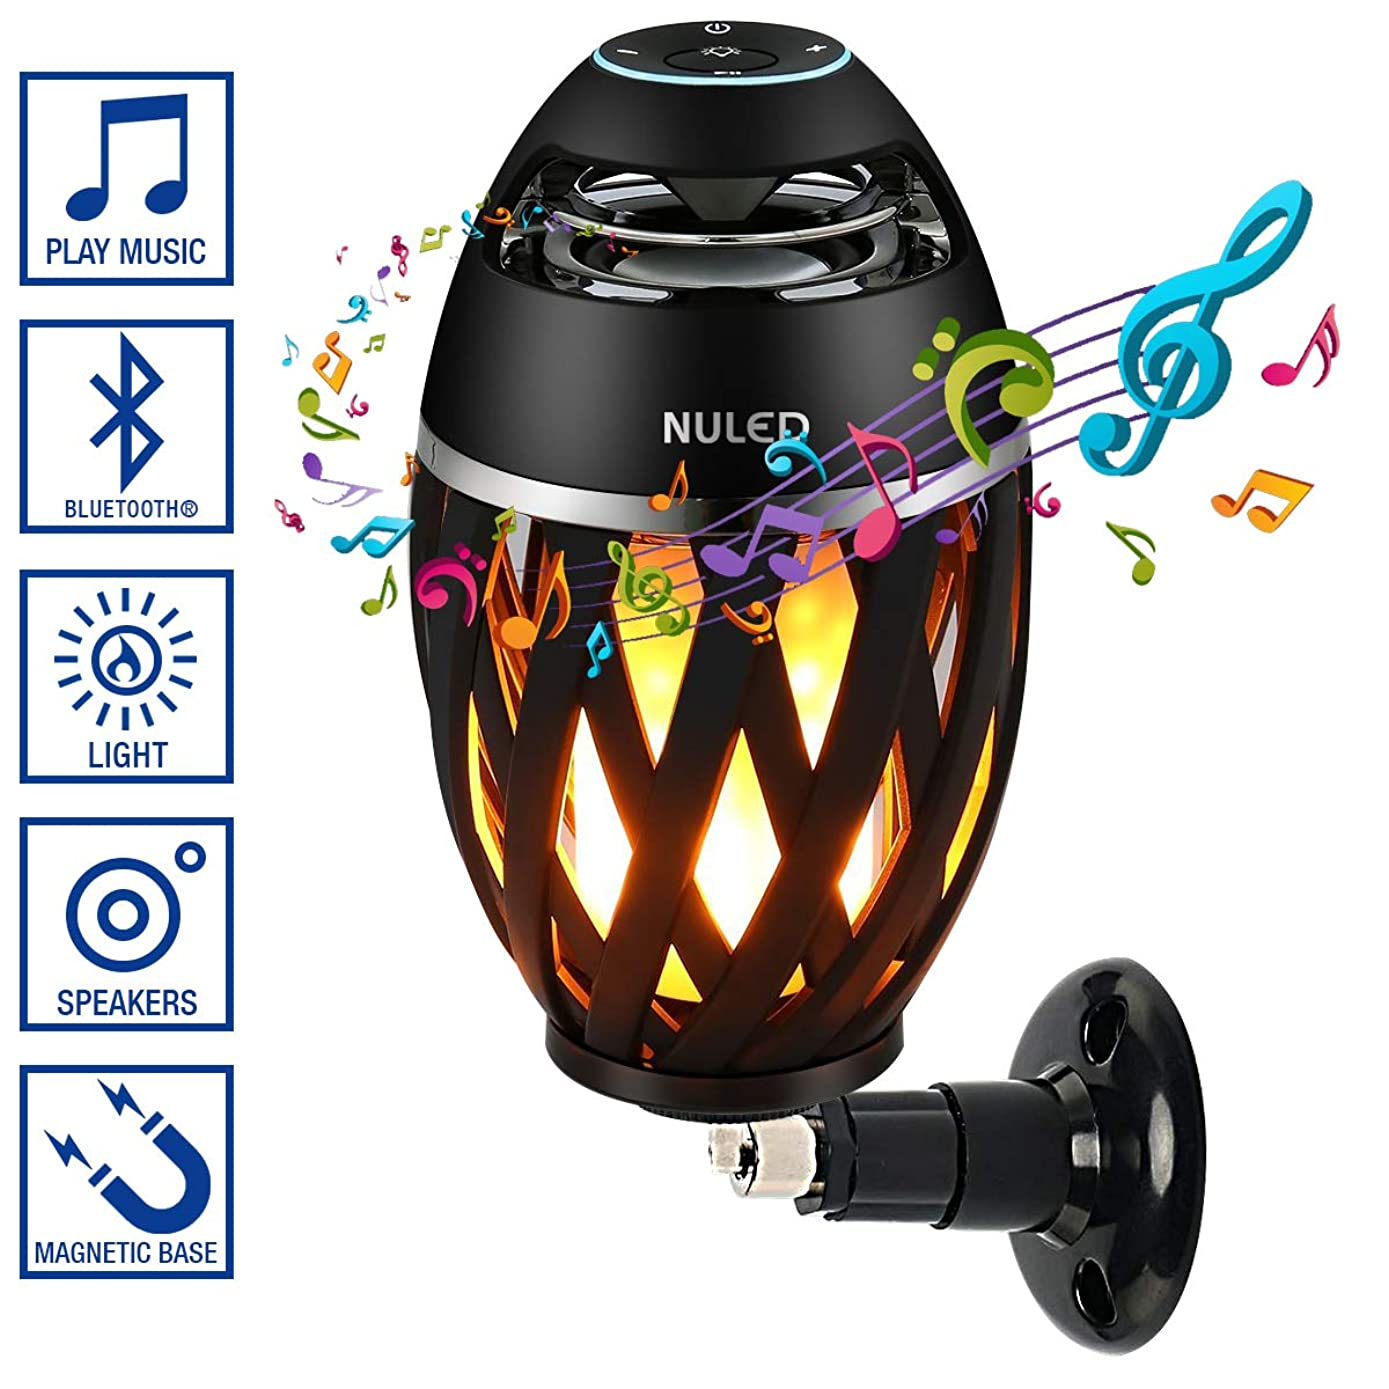 Magnetic Base & Wall Mount Kit IP65 Waterproof NULED Flame Speaker w. LED Romantic Atmosphere 3600mAh Rechargeable Batteries for Indoor/Outdoor Activities Bluetooth Pair 2 for Stereo Sound (One Pack)